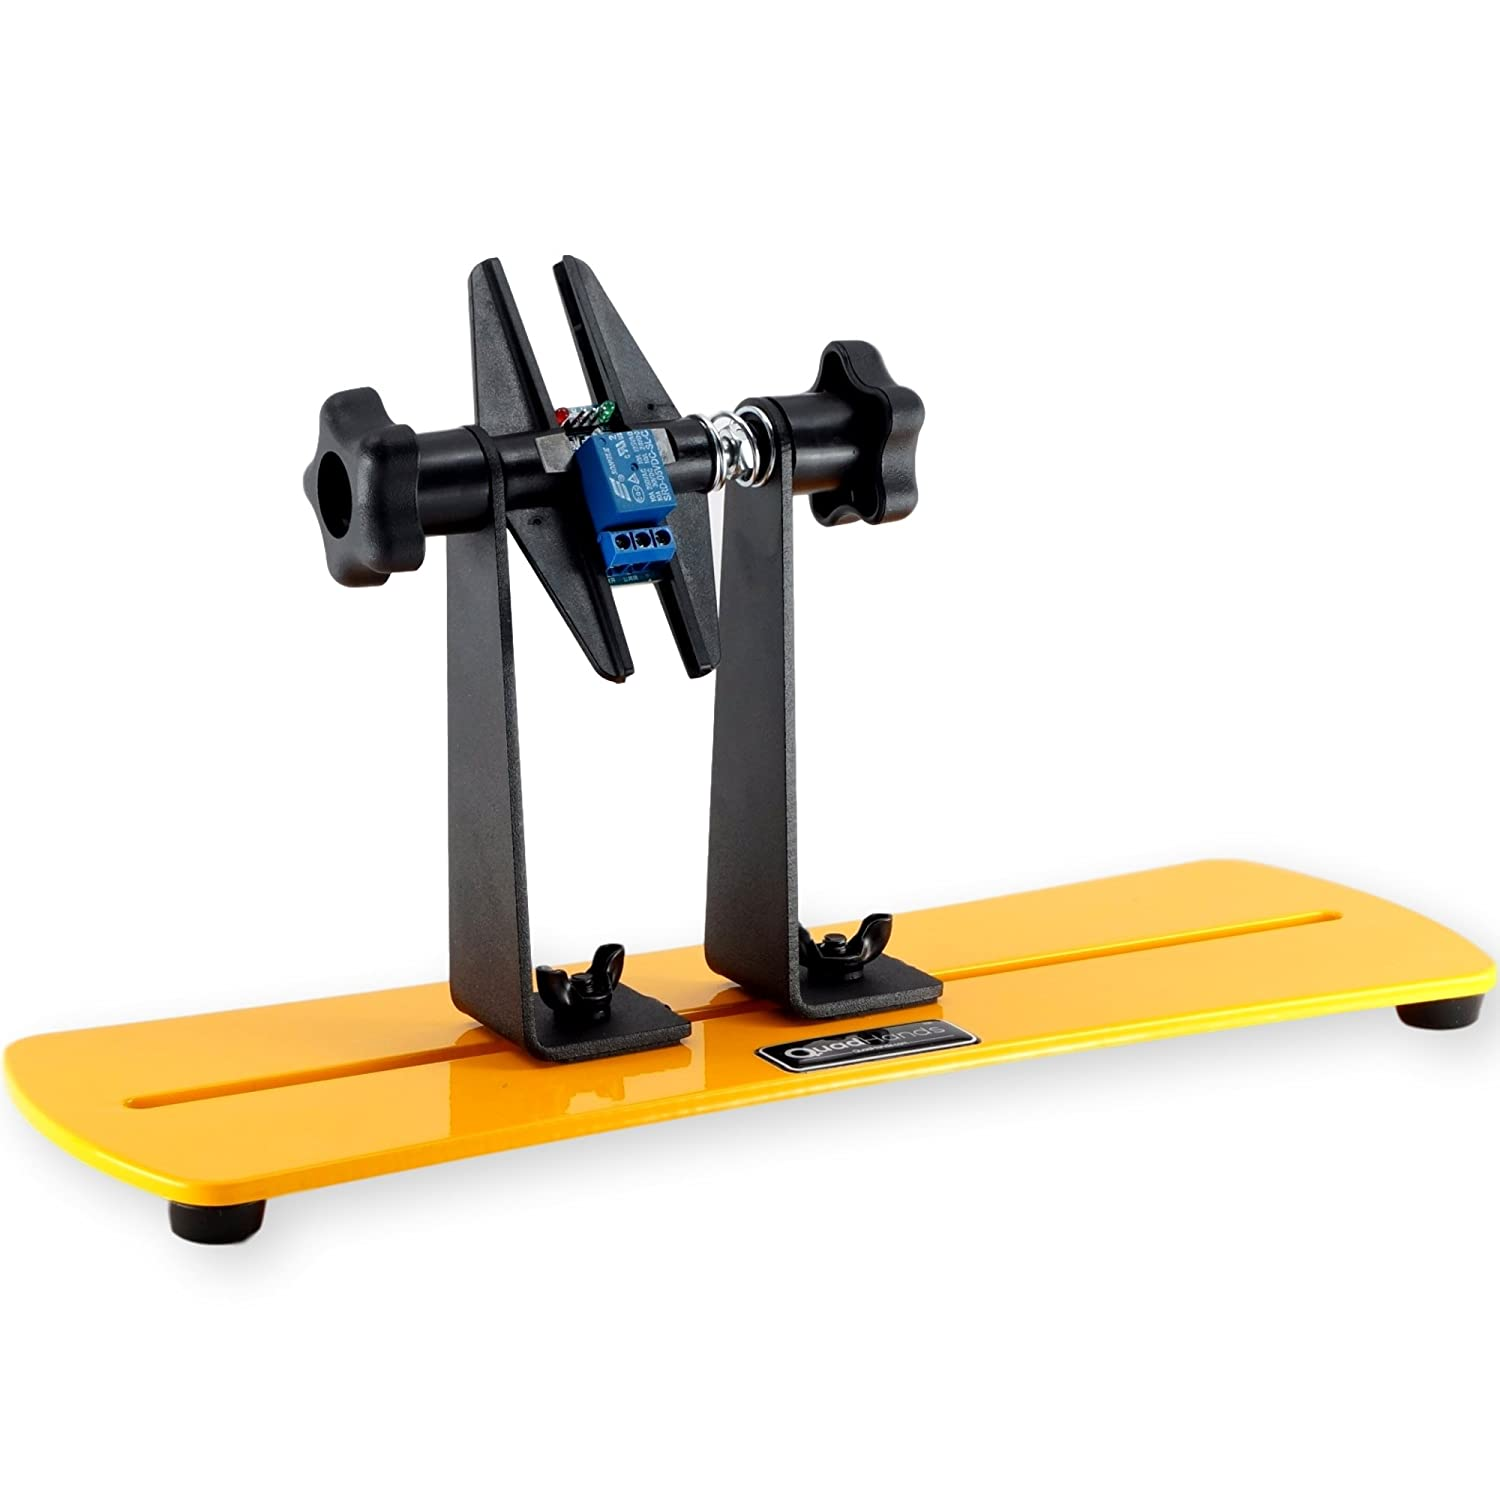 Quadhands Flip Circuit Board Holder Rotate Your Pcb 360 Degrees Panavise Clamp Vise W Base With Ease Amazoncom